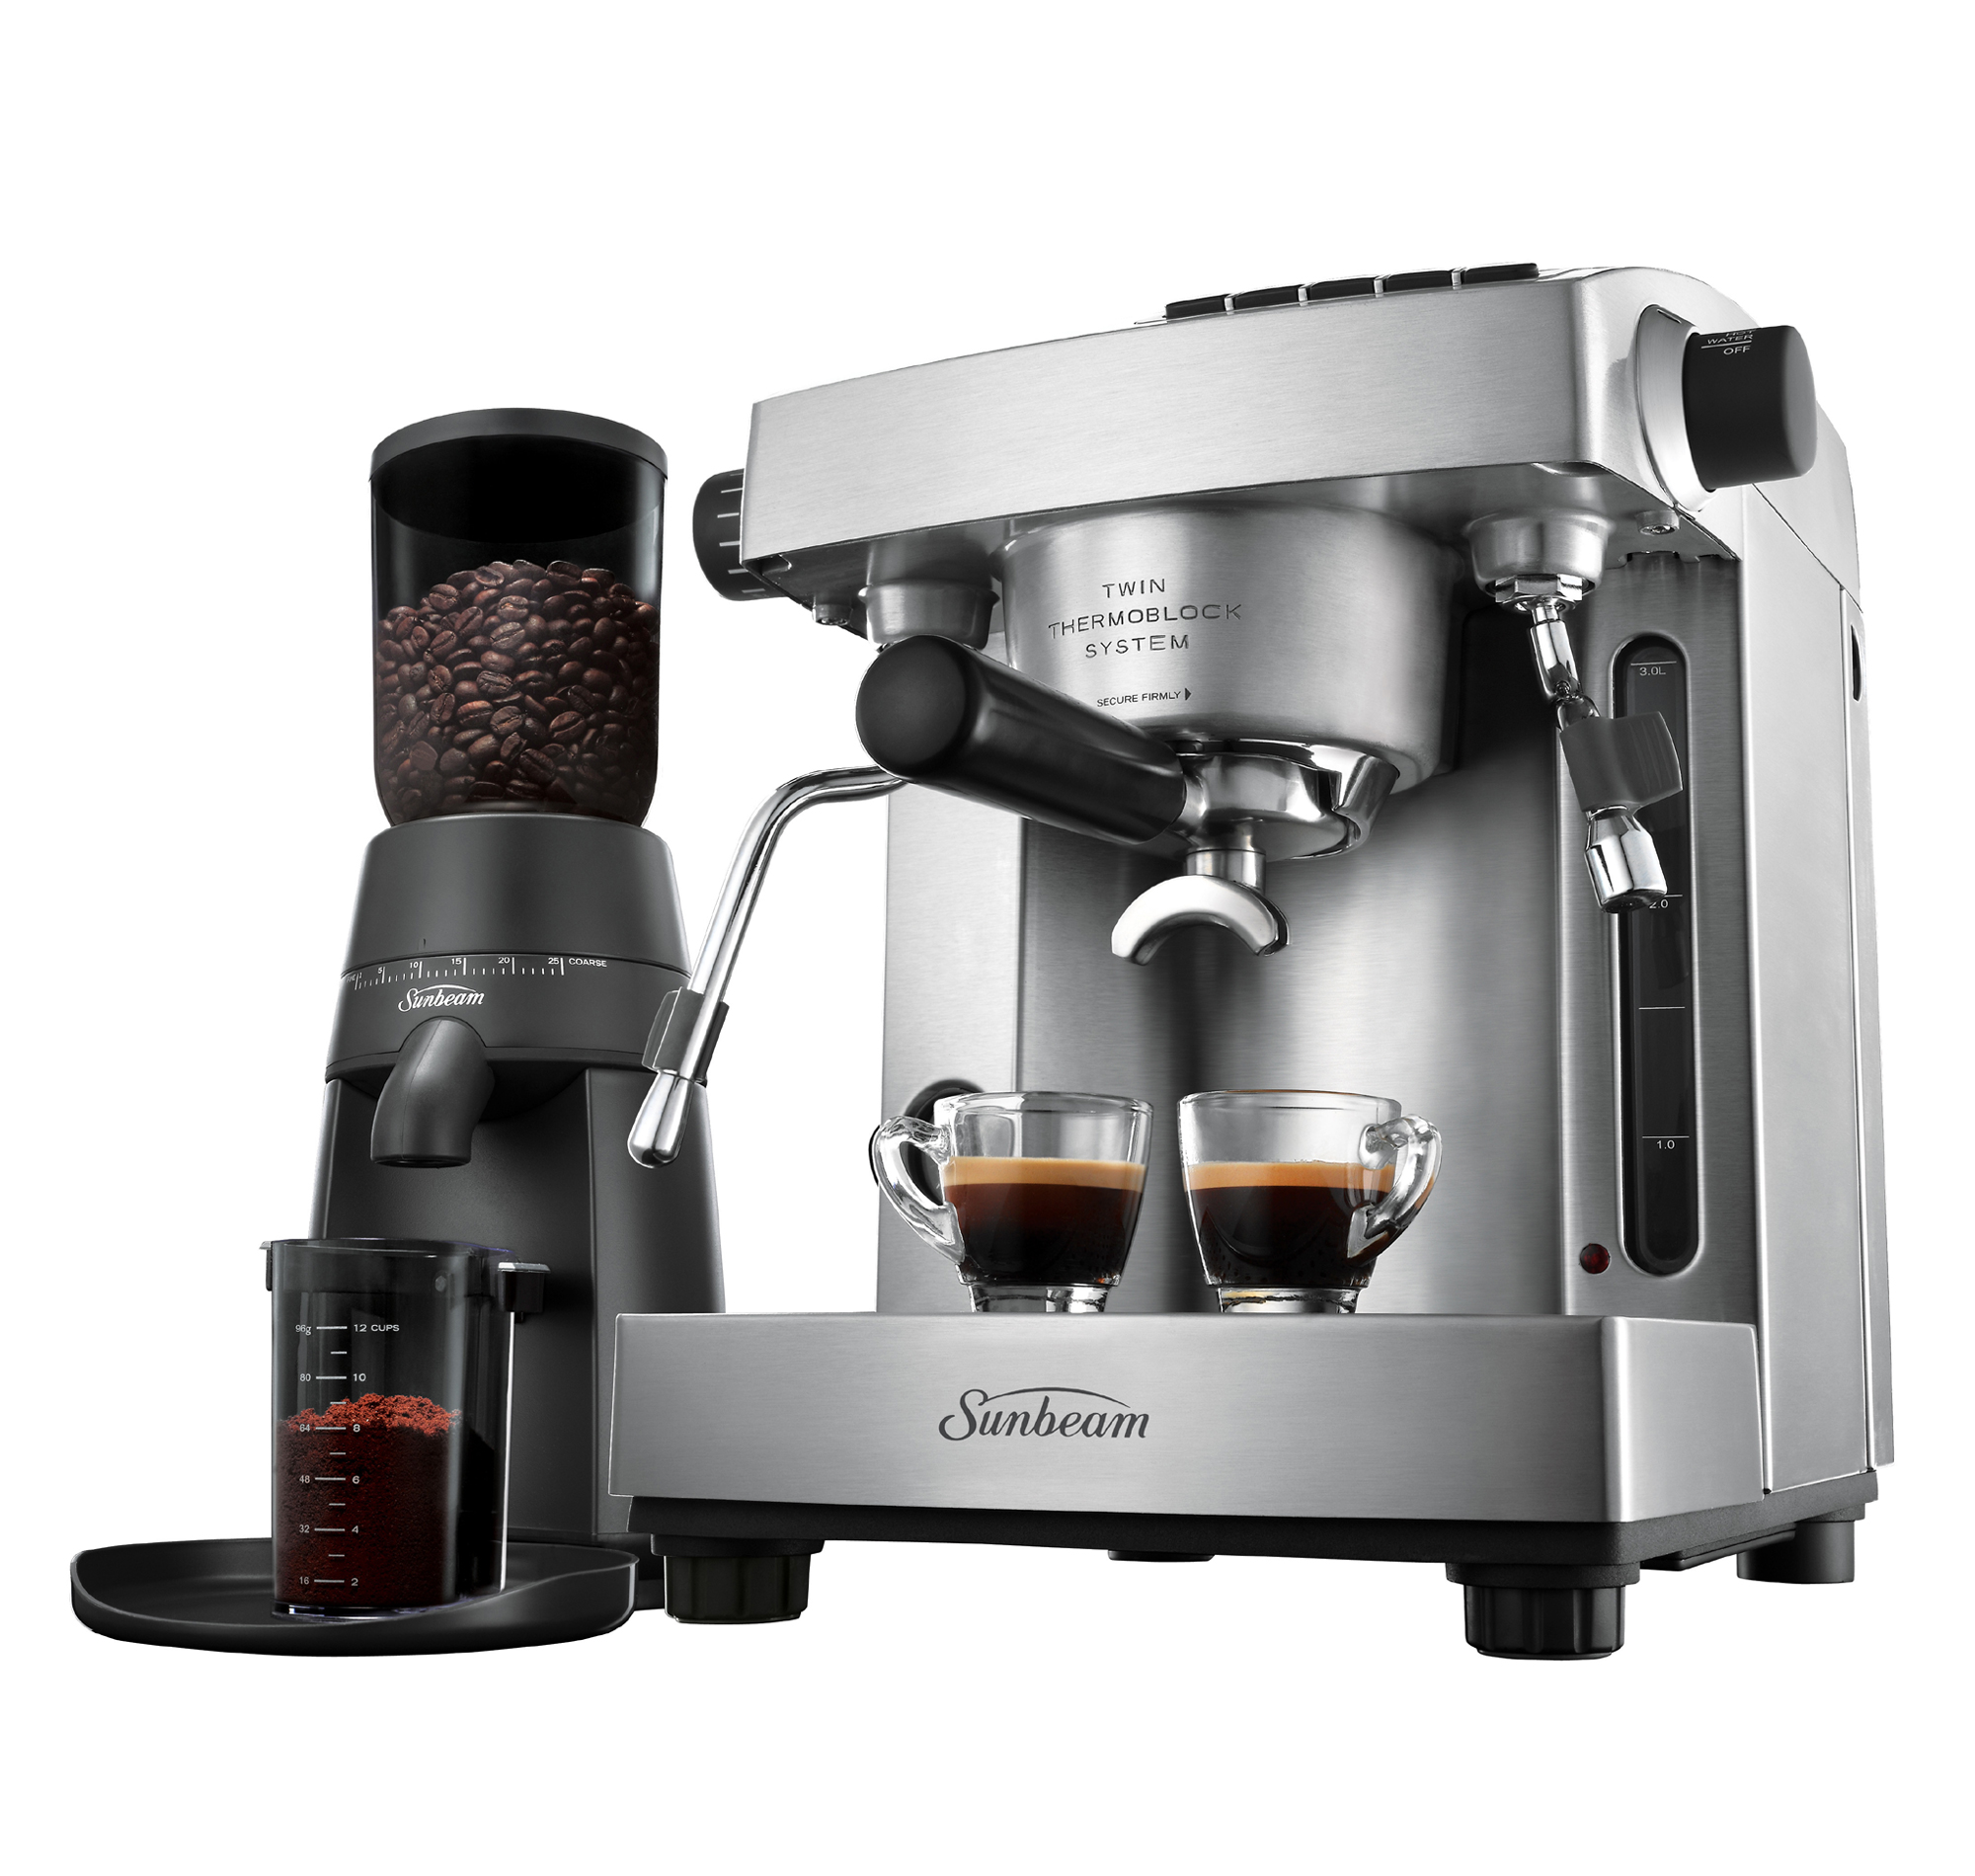 Sunbeam Cafe Series Espresso EM6910 / PU6910 Reviews - ProductReview.com.au